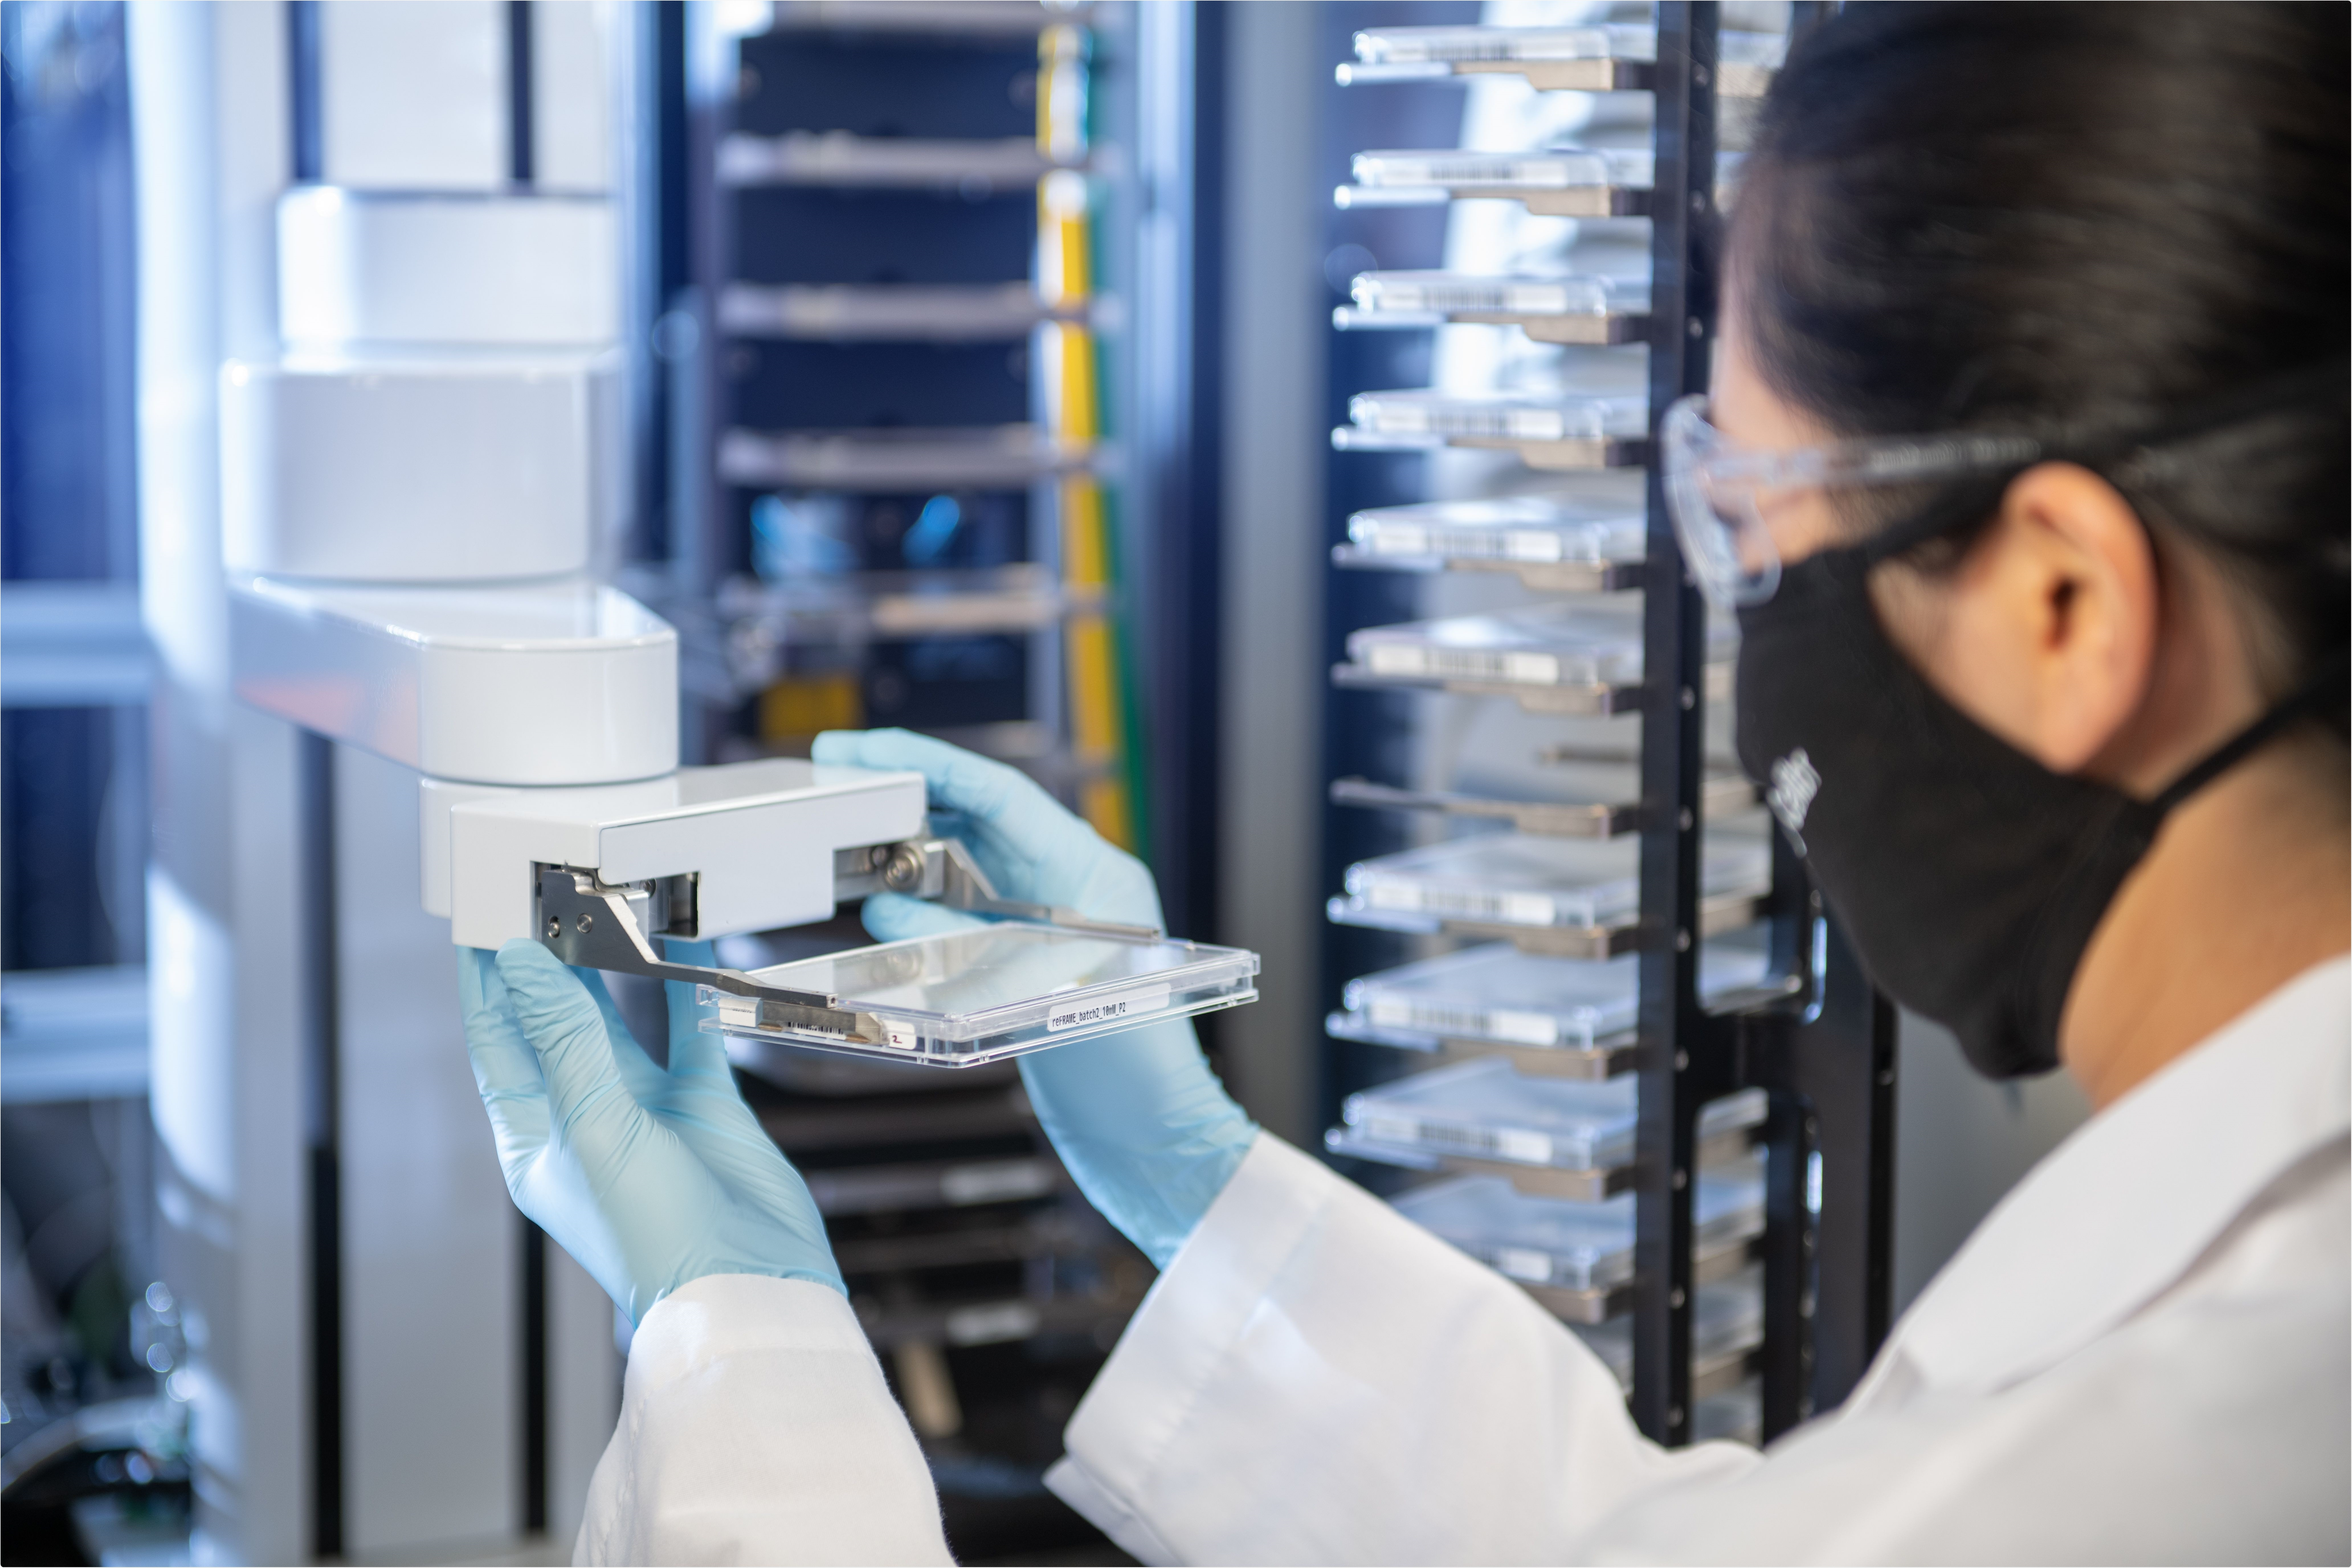 A researcher at Calibr, the drug discovery division of Scripps Research, working in the high-throughput screening facility used to identify potential COVID-19 therapies.